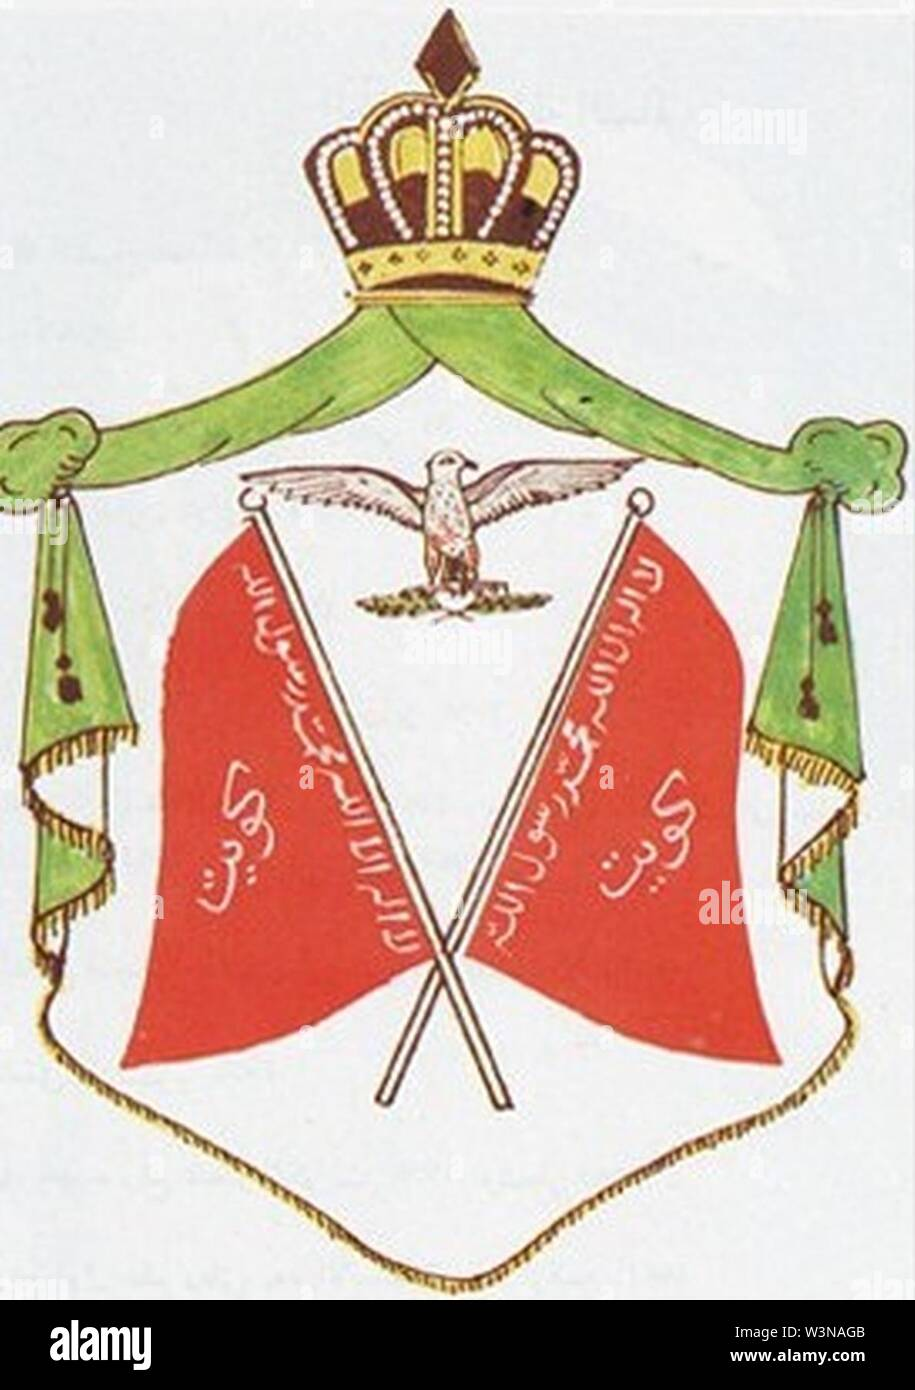 Coat of arms of kuwait 1940-1956. - Stock Image